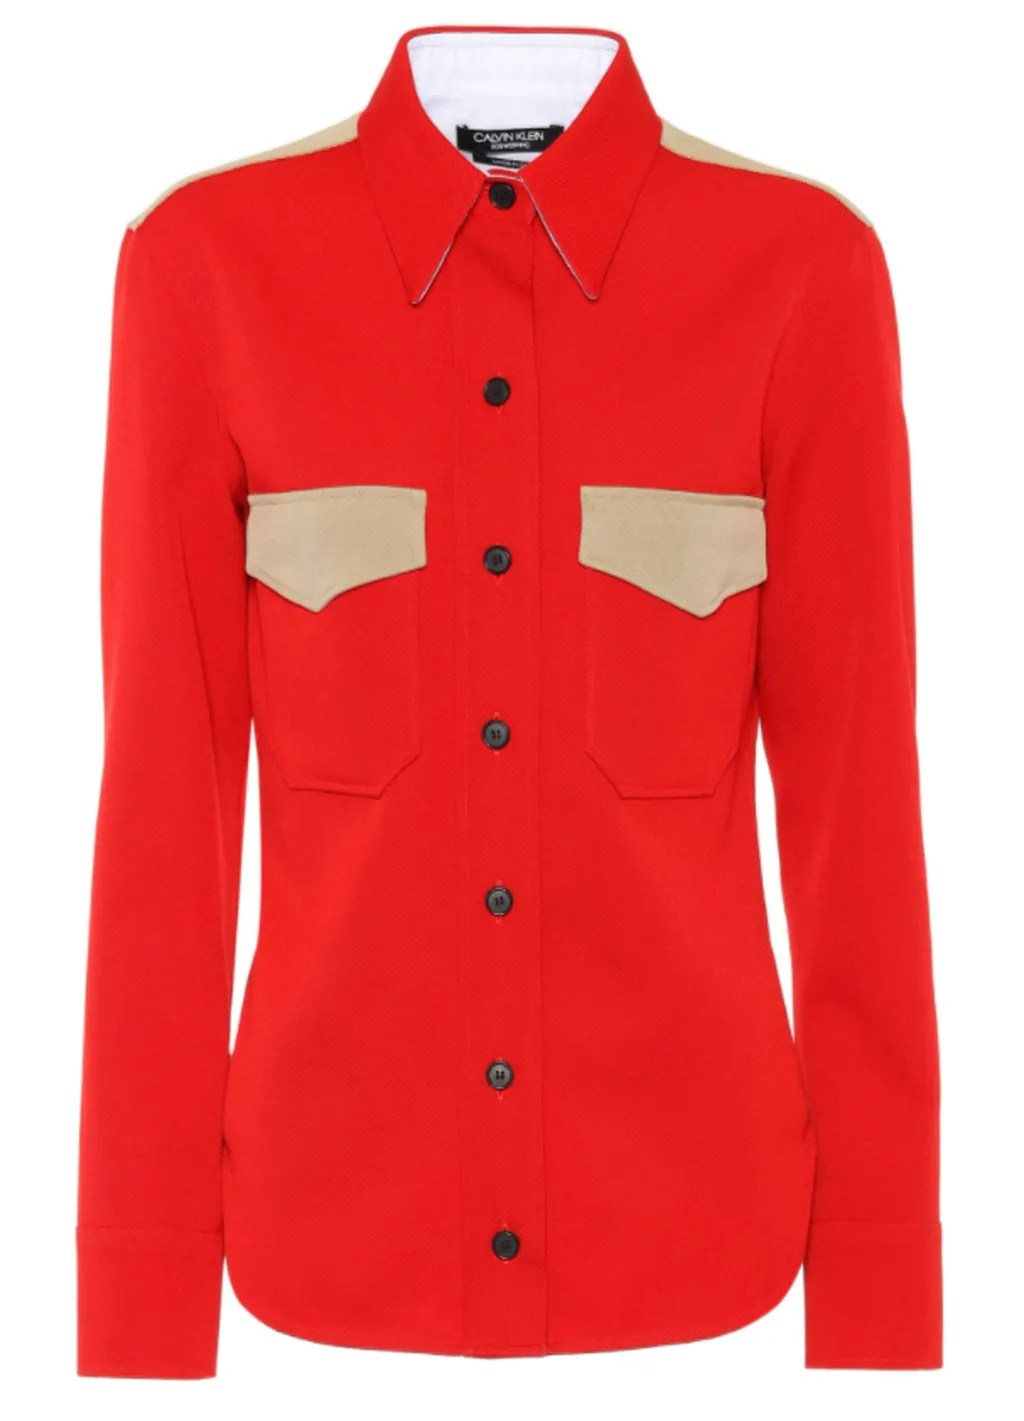 Spring 2018 Wardrobe Essentials: Color-Blocked Buttoned-up Shirt